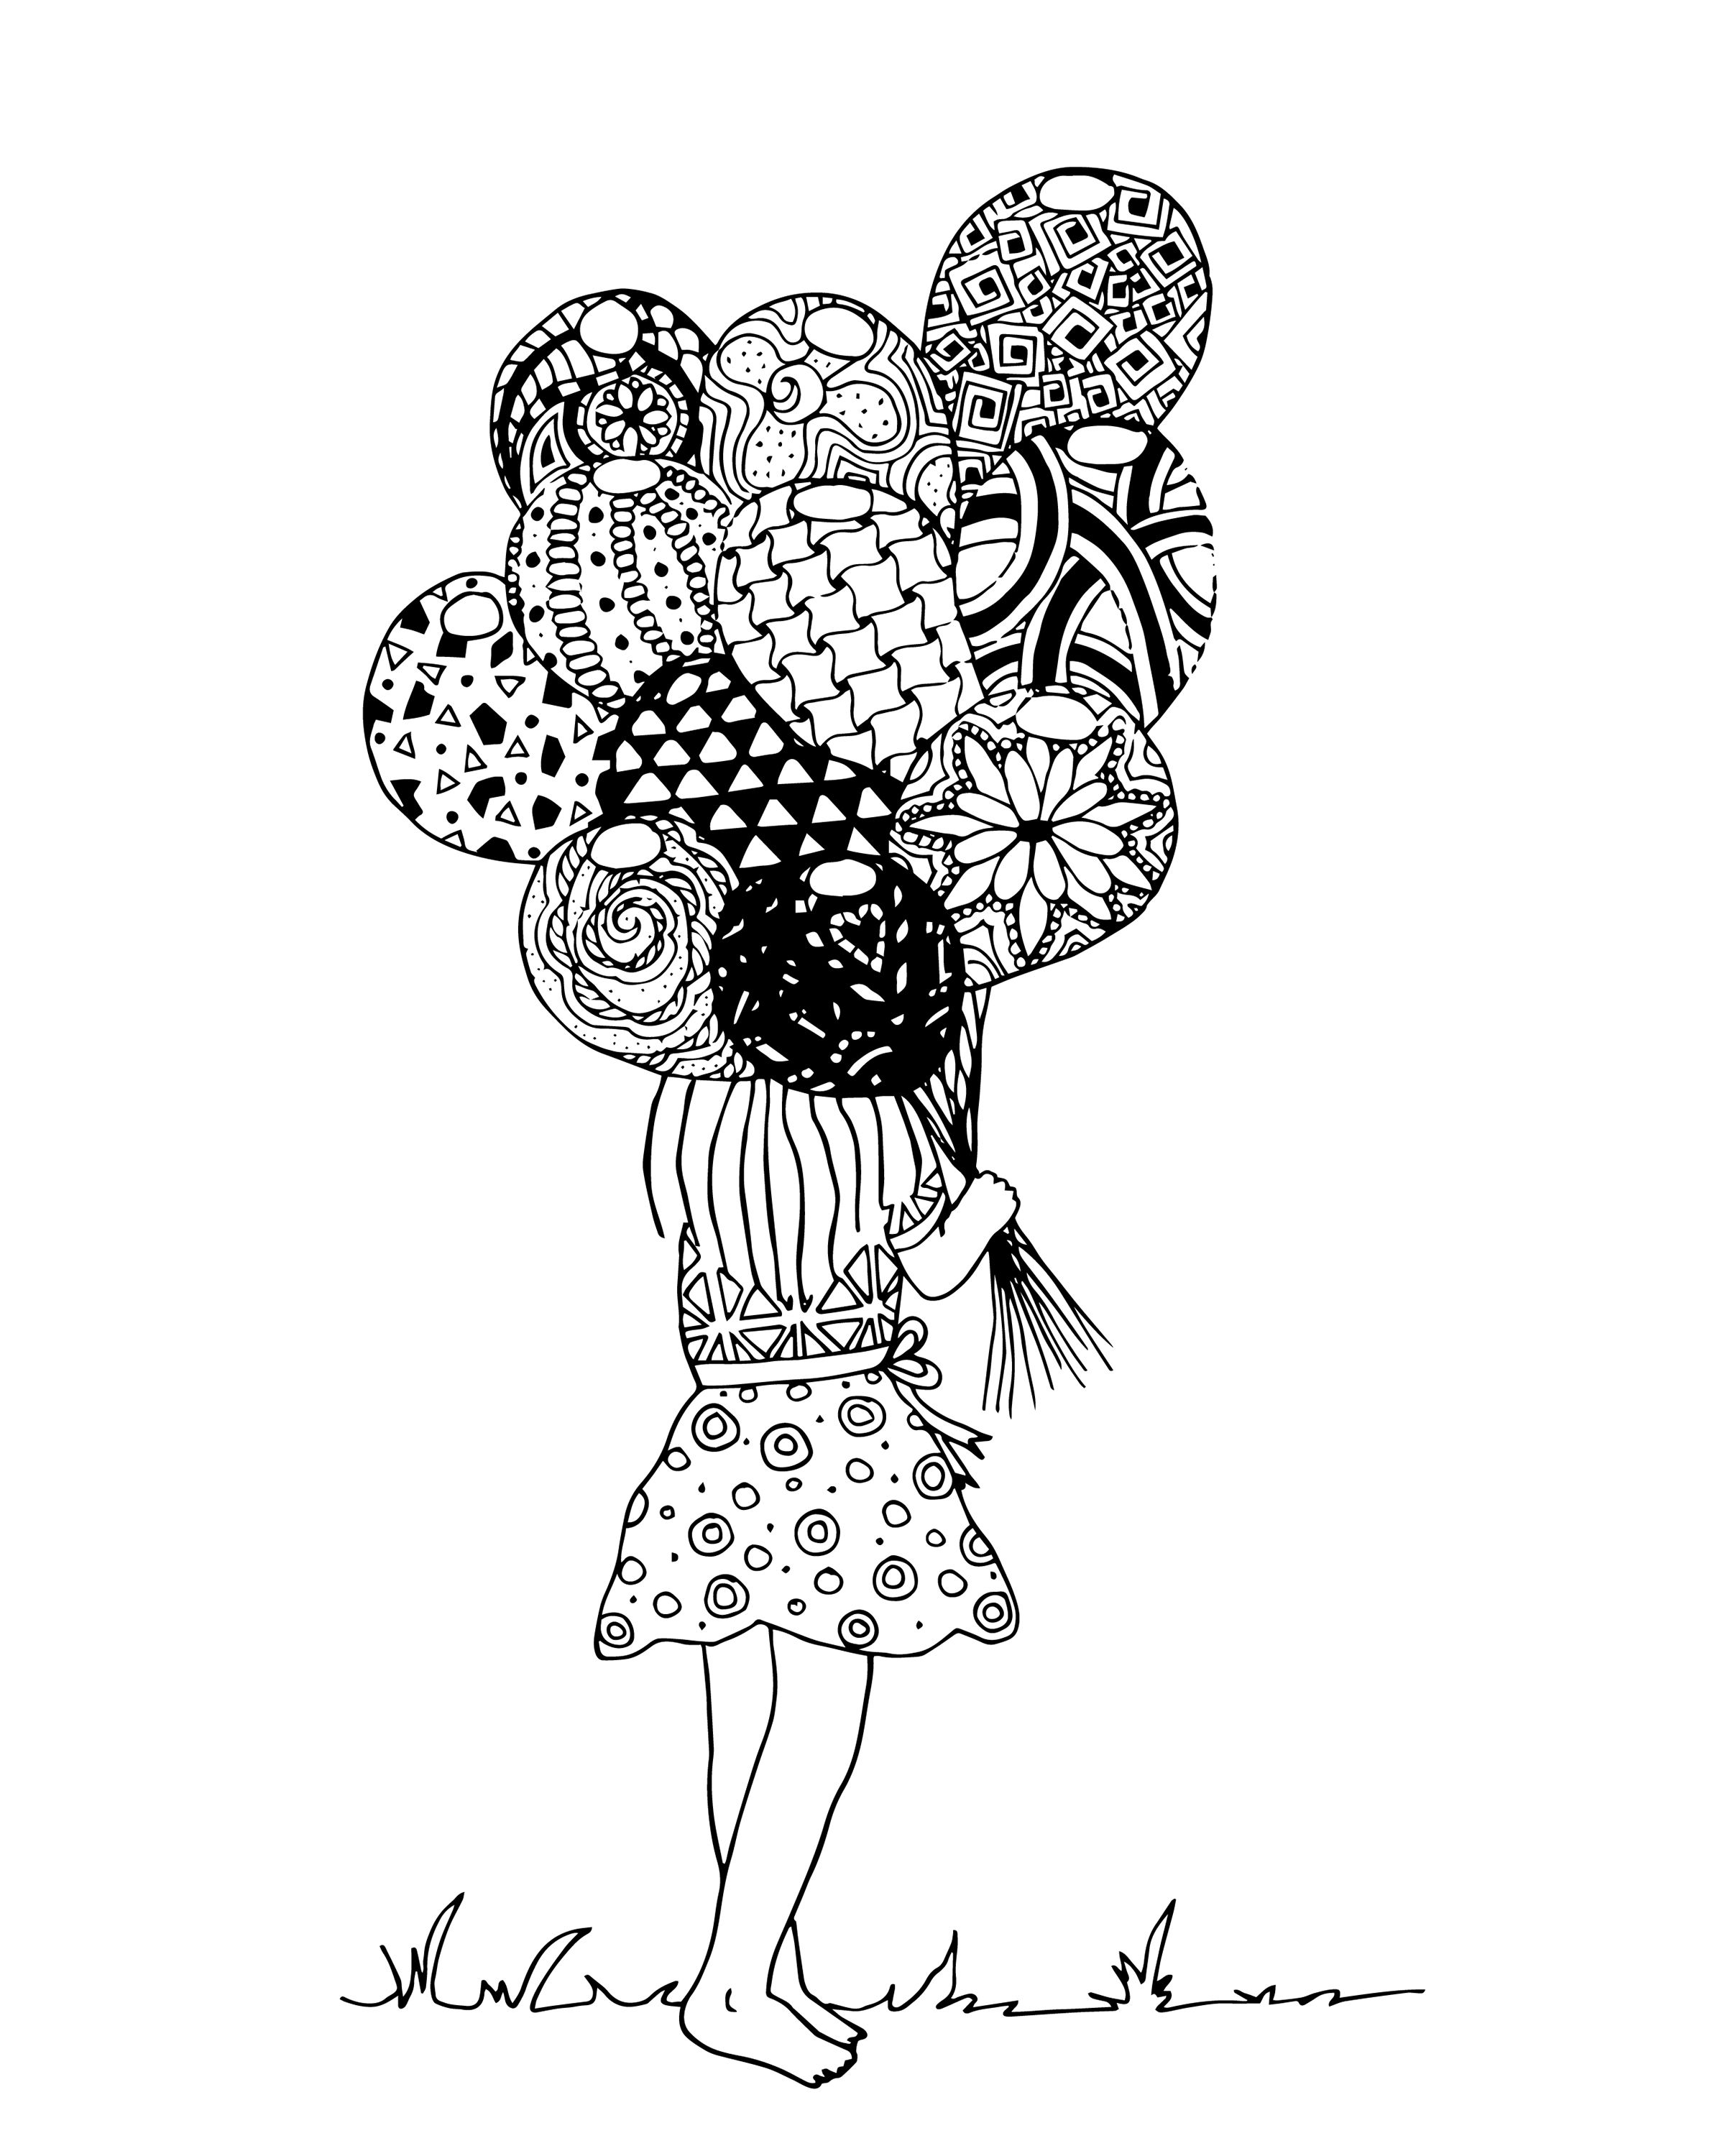 Free Coloring Page Adults. Little Girl Holding Handful Of Balloons